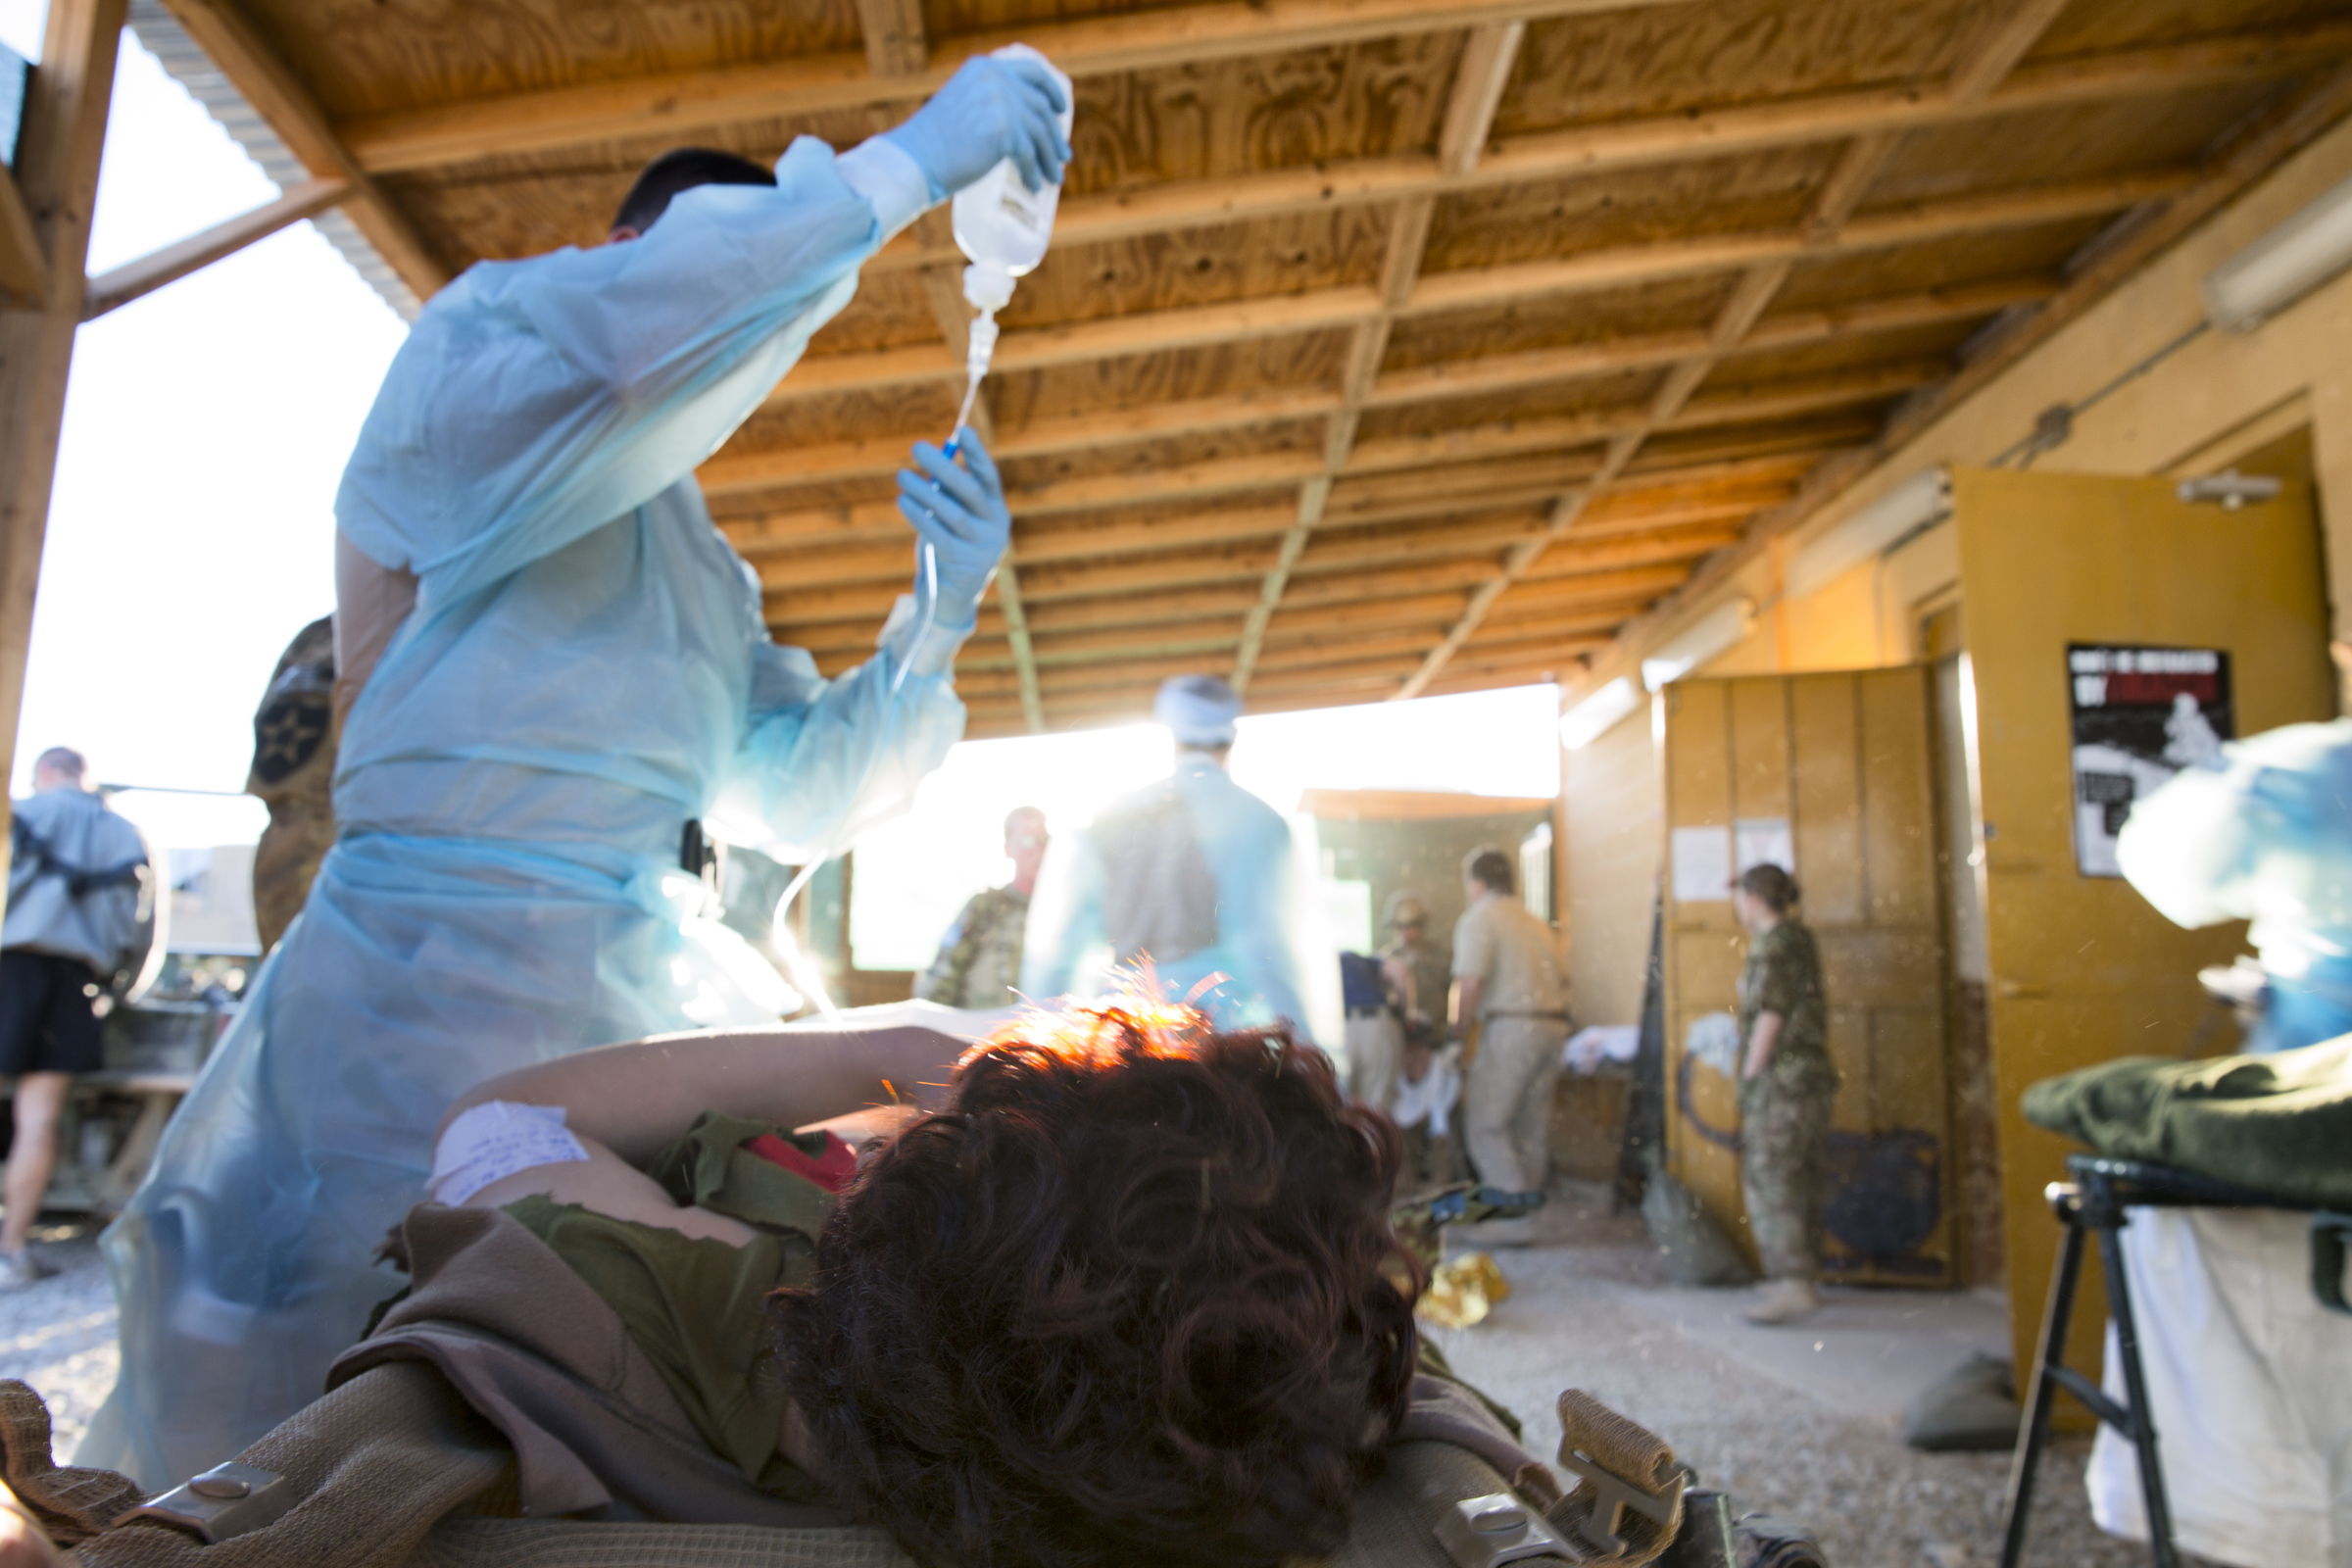 A medic attends to a wounded Afghan soldier at the Forward Operating Base Farah aid station (Farah, Afghanistan).